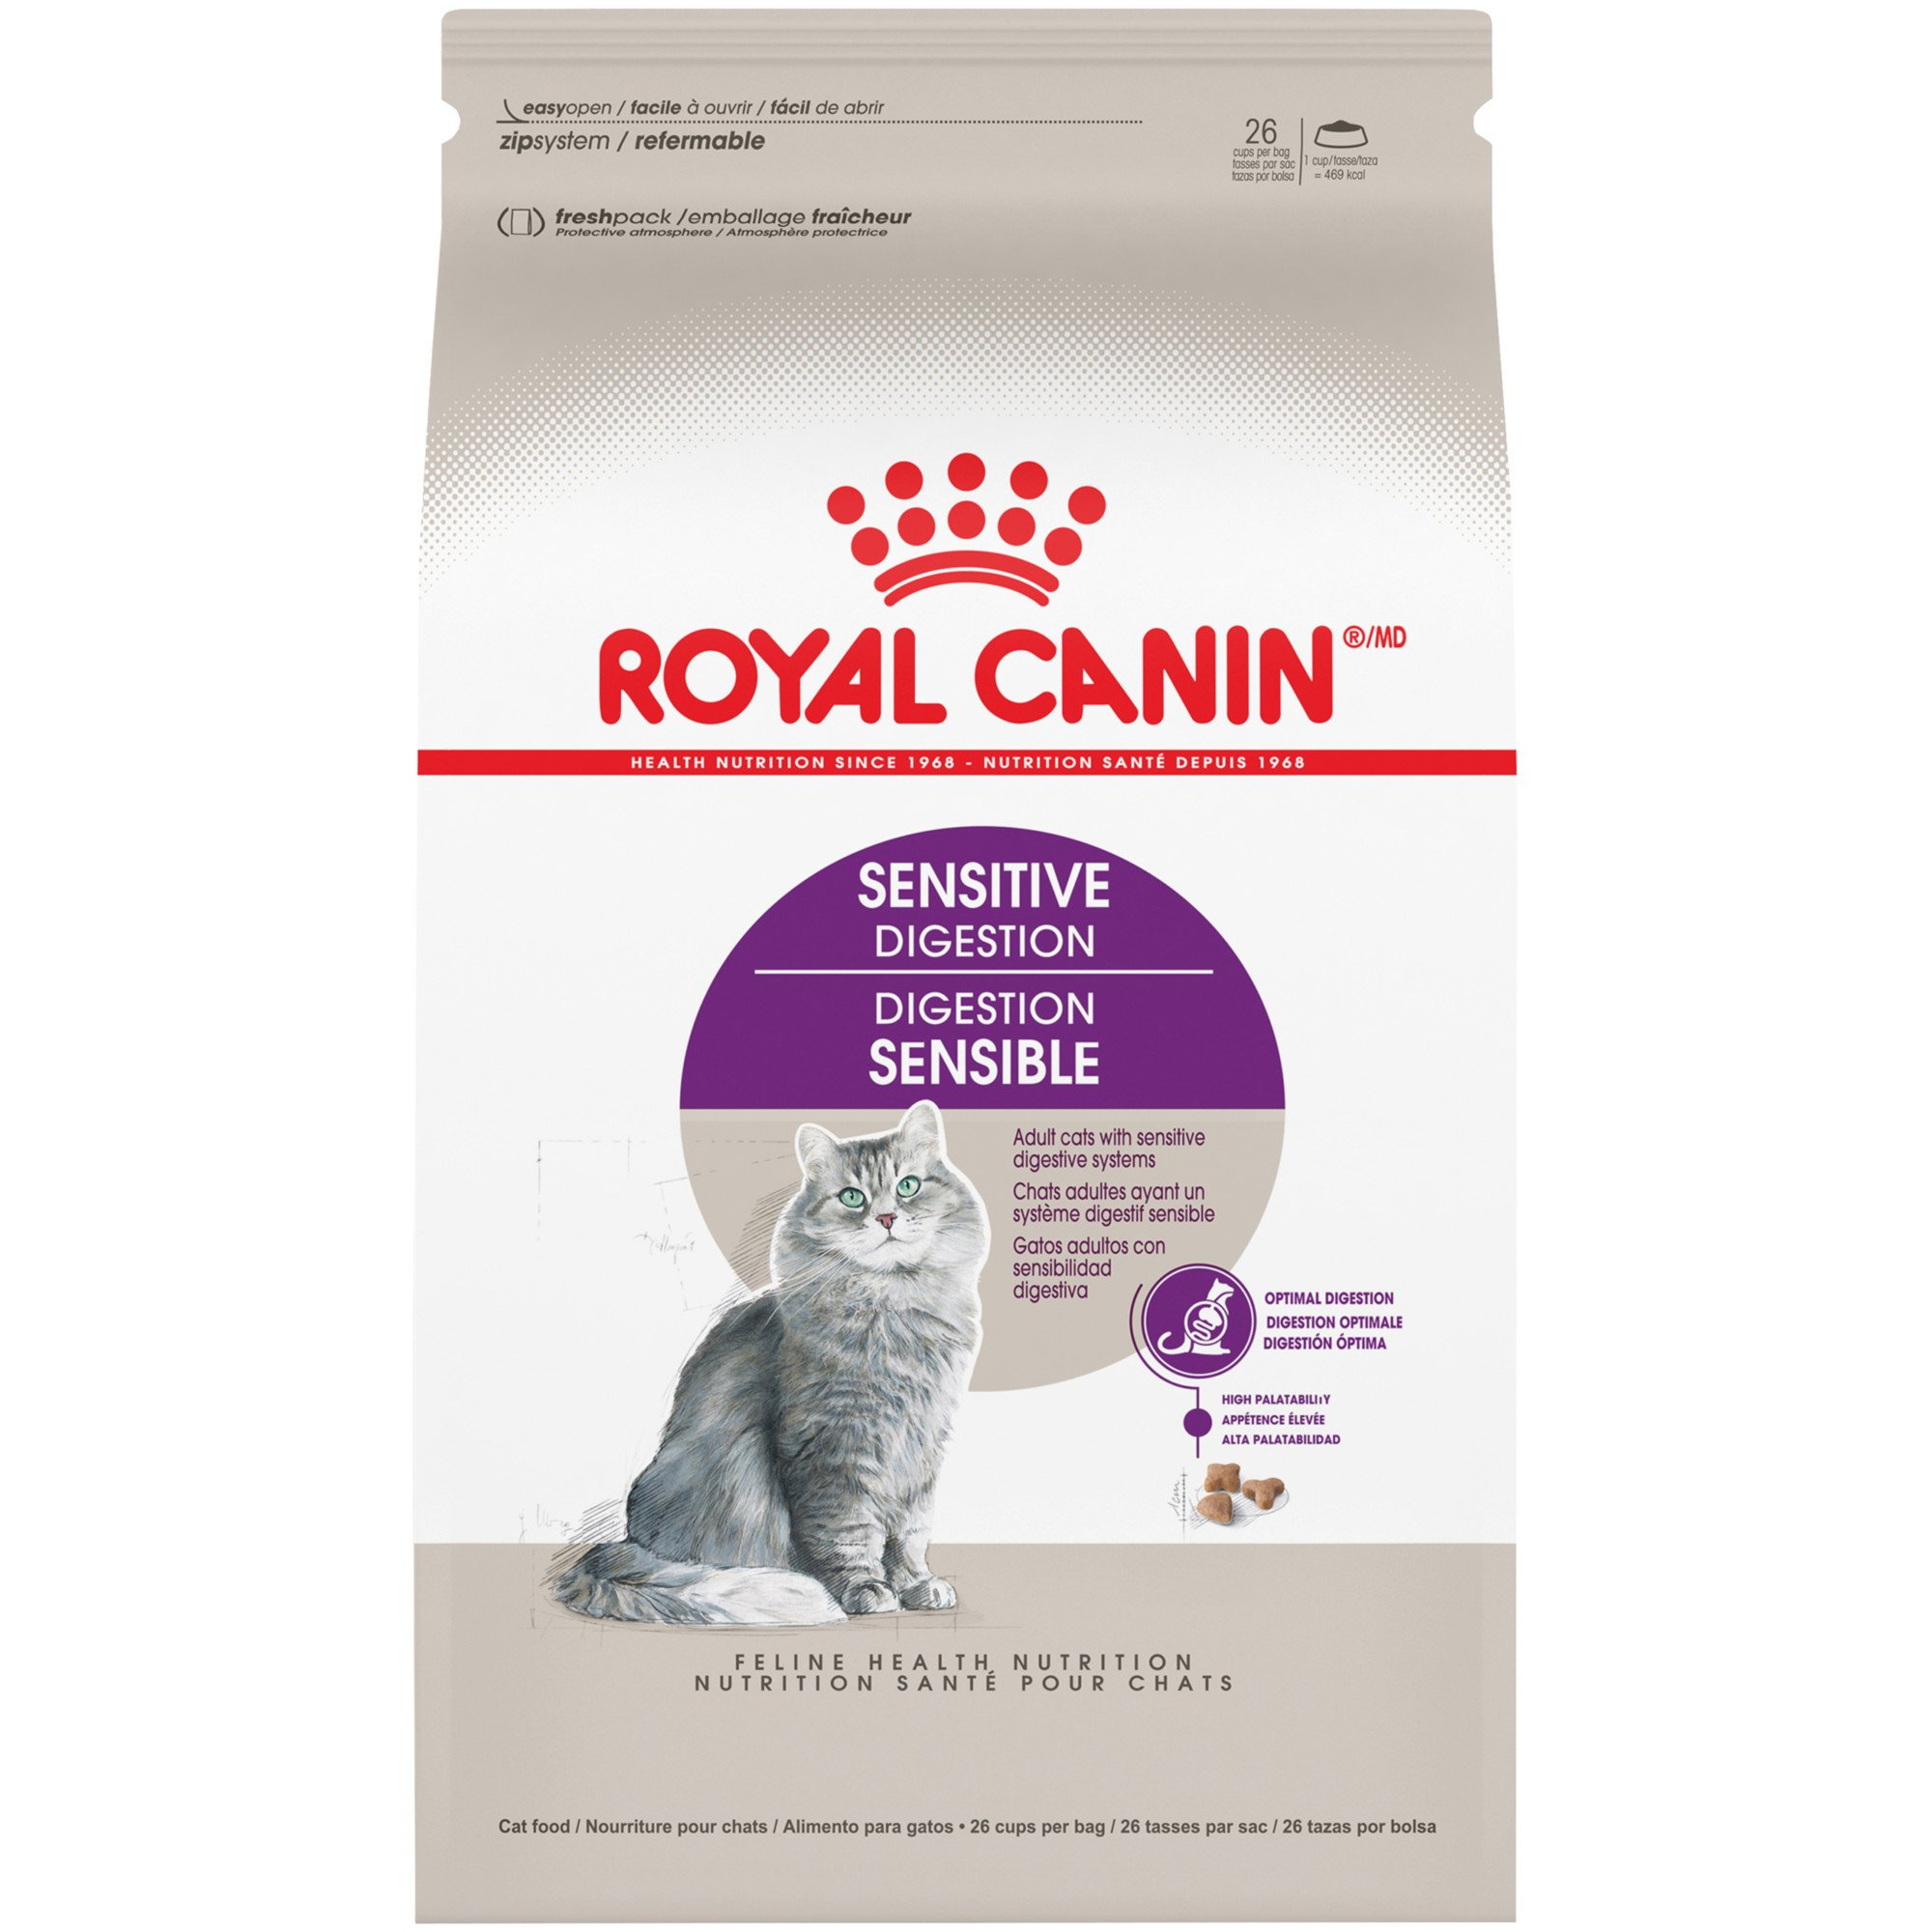 royal canin feline health nutrition special 33 dry cat. Black Bedroom Furniture Sets. Home Design Ideas